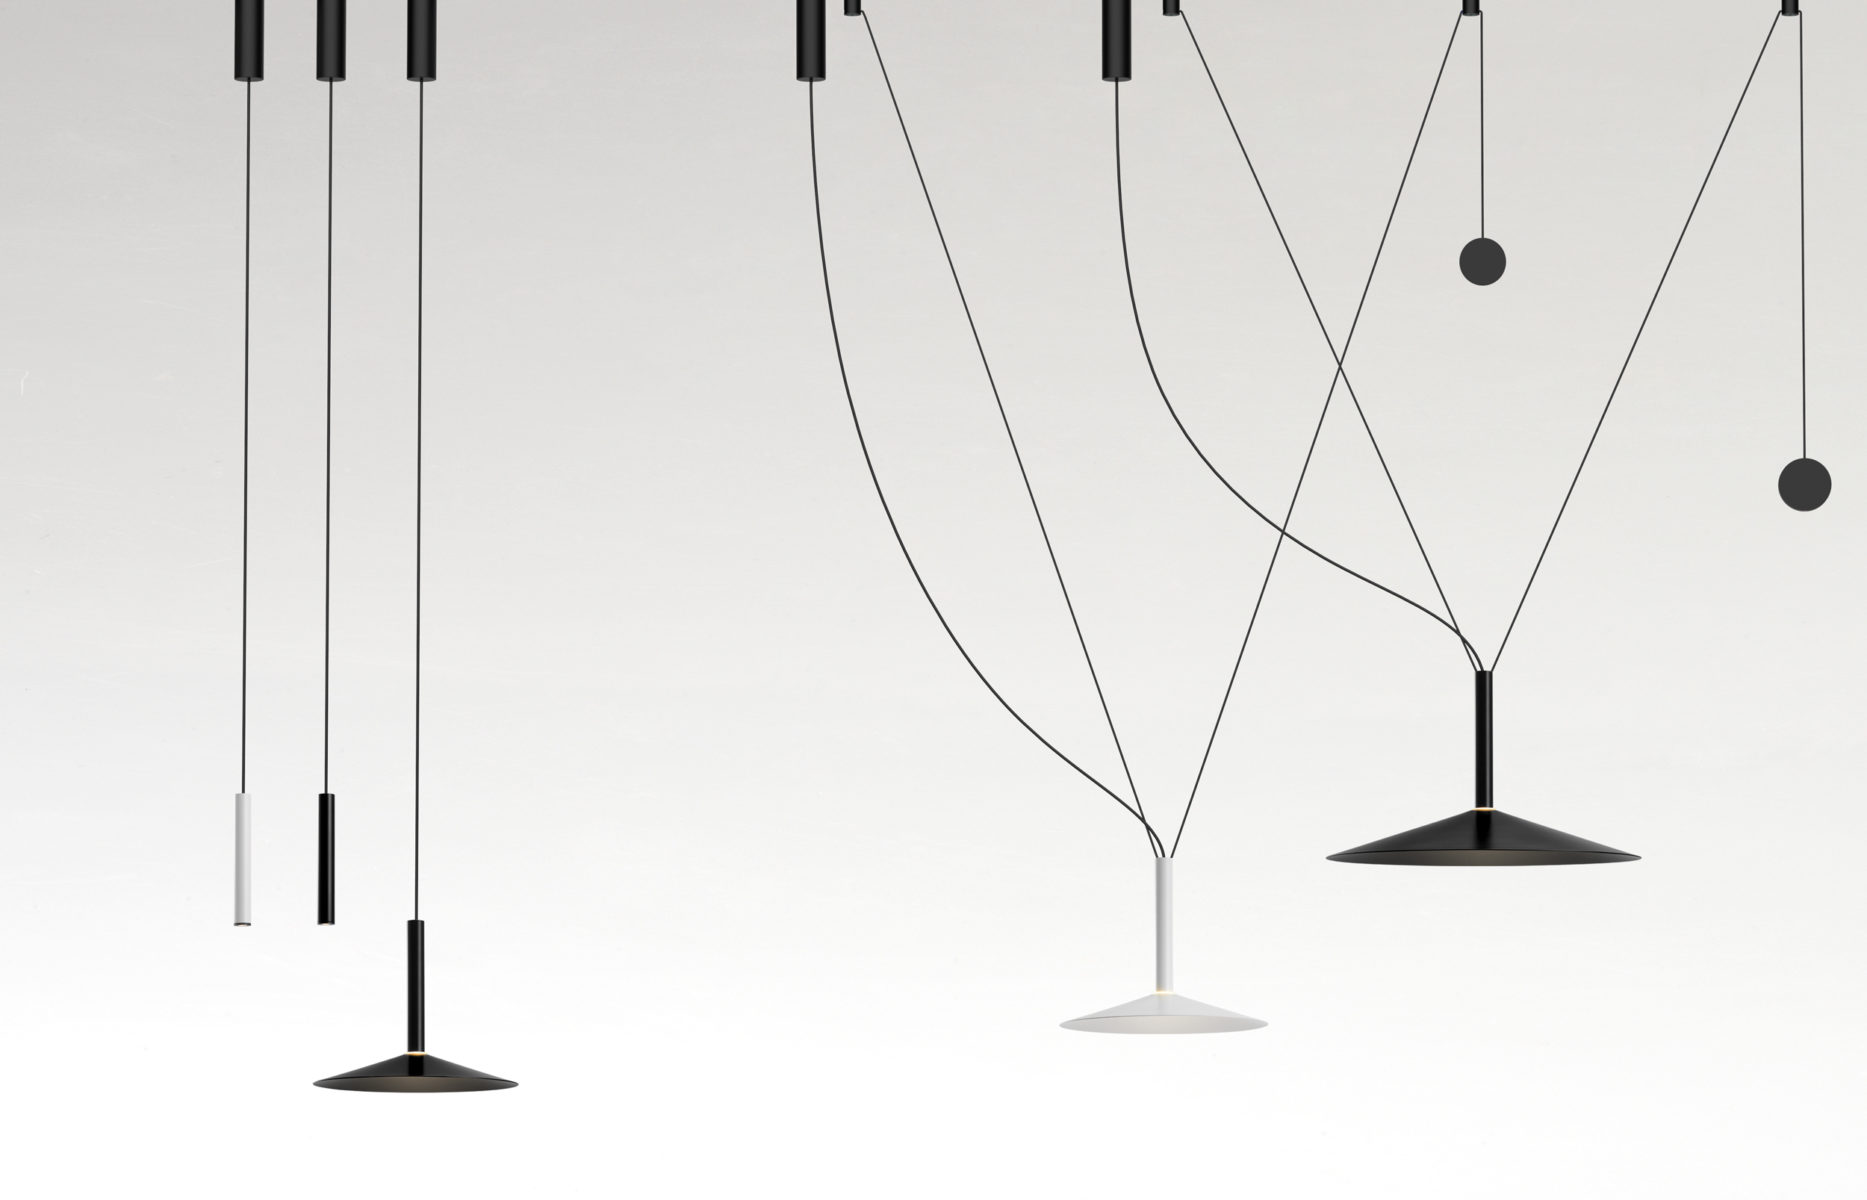 Milana 47 Counterweight Pendant Light - Tubular structure and lacquered aluminium shade with a translucid polycarbonate diffuser. Cable with a counterweight that allows moving the lamp throughout the space.  Moving the point of light, that's the idea behind the new design by Jaume Ramírez. Milana involves a system of modular suspension lamps that combine with one another and can be moved both vertically and horizontally.  Paradoxically, this new design starts by deconstructing the archetype of a lamp; by synthesizing it as much as possible, only a cylindrical body remains, suspended with a built-in LED. To this cylinder we can add different conical shades in oyster white, black, beige, grey or red, in several sizes. But most ingenious of all is that each of these lamps can have a simple counterweight such that when they are hung between two points, they can be moved.  An almost imperceptible lens covers the LED and distributes the light. If only the cylindrical lamp is used, the downward-directed light is impeccable, and when a shade is added, the light escapes, illuminating the lamp itself. This new lighting system gives the user control of the light, offering a new conceptual proposal.  Covering and baring lamps, moving them up, down and sideways. Mixing cylindrical shapes or combining them with decorative lamps. Milana lets you create countless compositions, a symphony of light. | Matter of Stuff